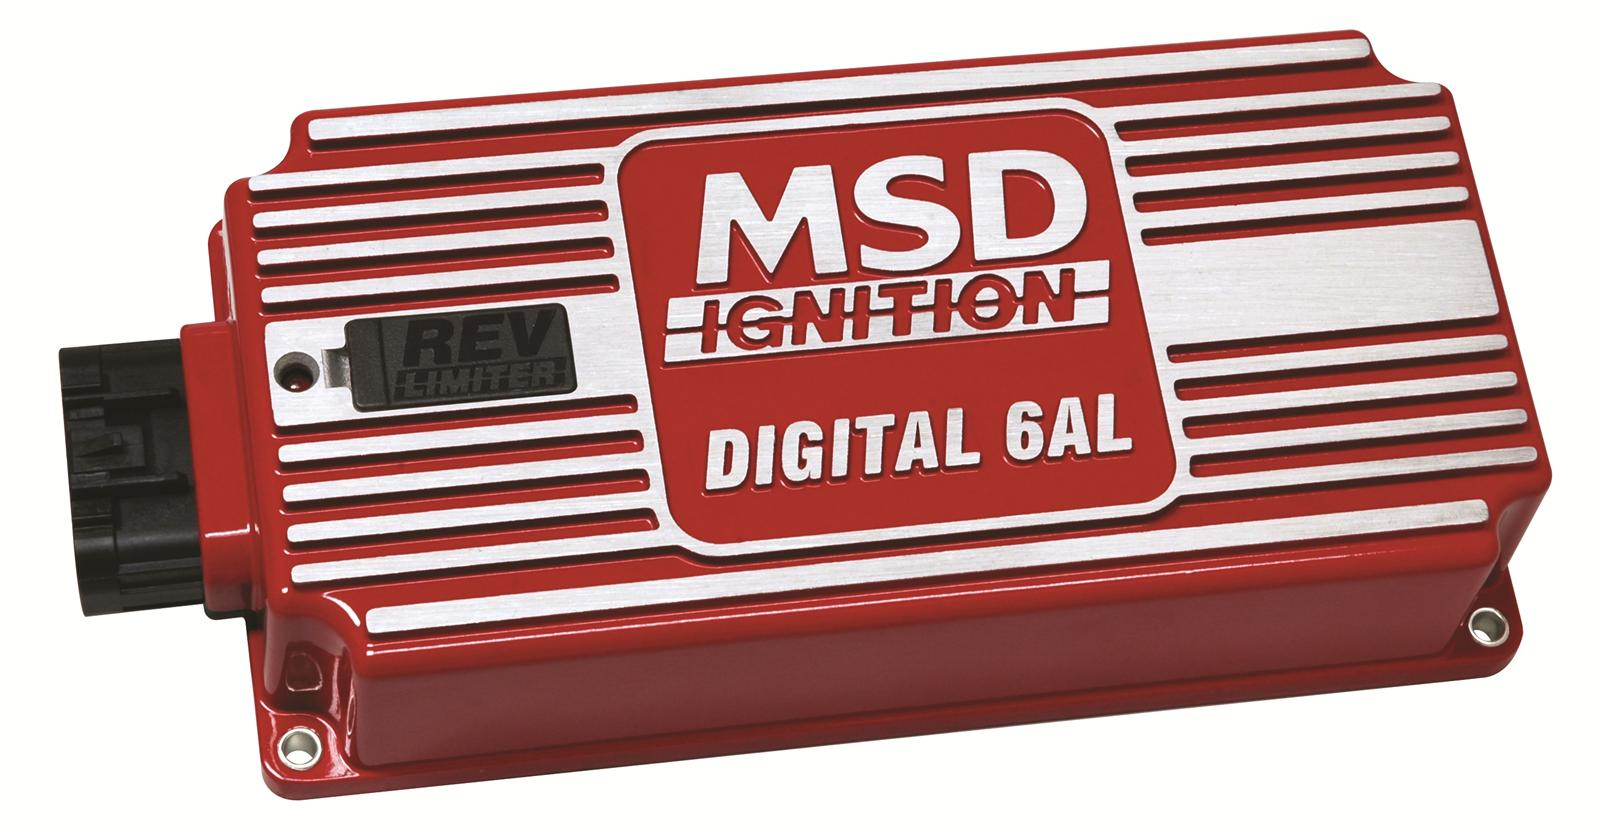 hight resolution of msd digital 6al ignition controllers 6425 free shipping on orders over 99 at summit racing